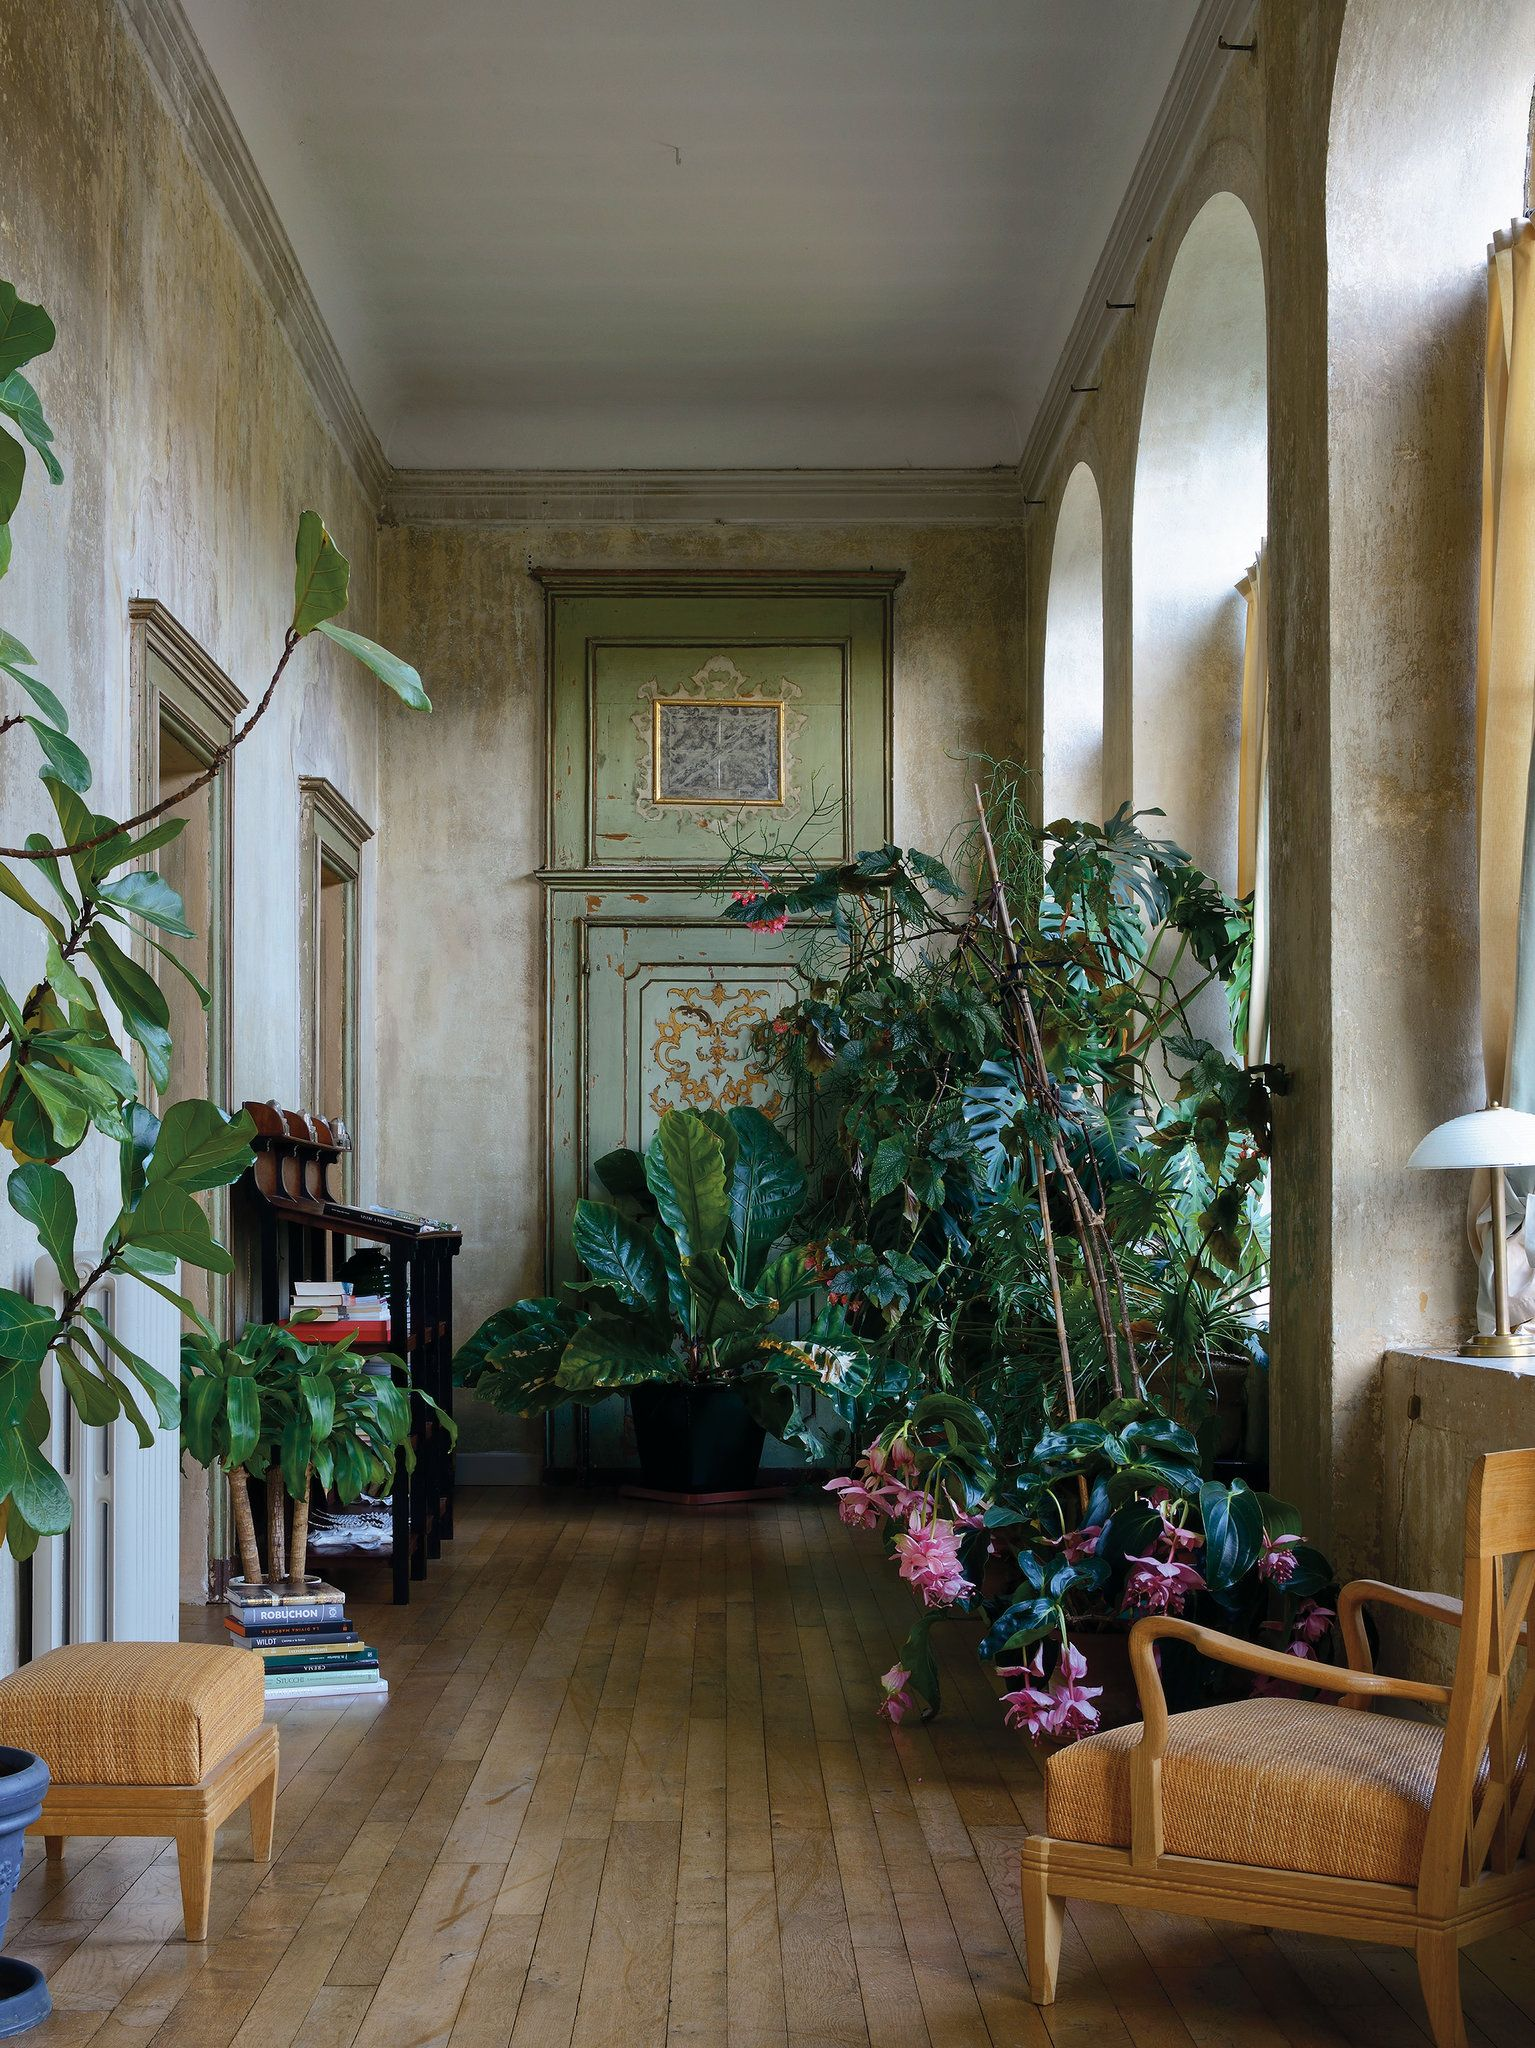 Home interior design outside inside luca guadagninous home  milan apartments and interiors